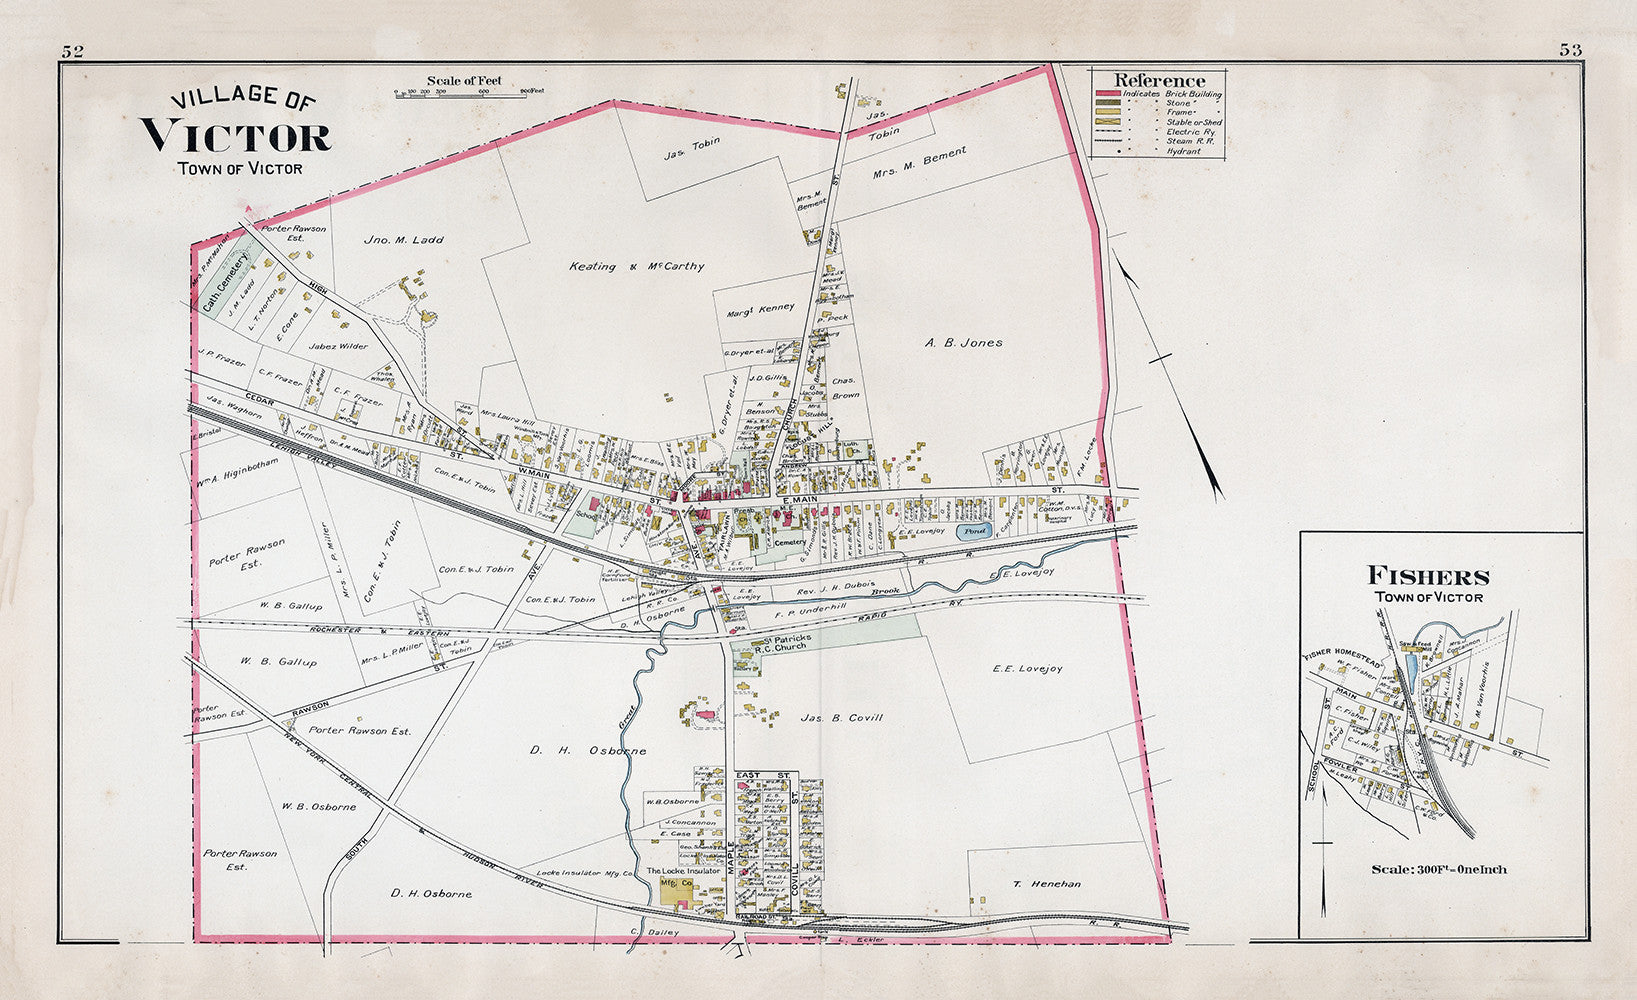 Village of Victor, Plate Map